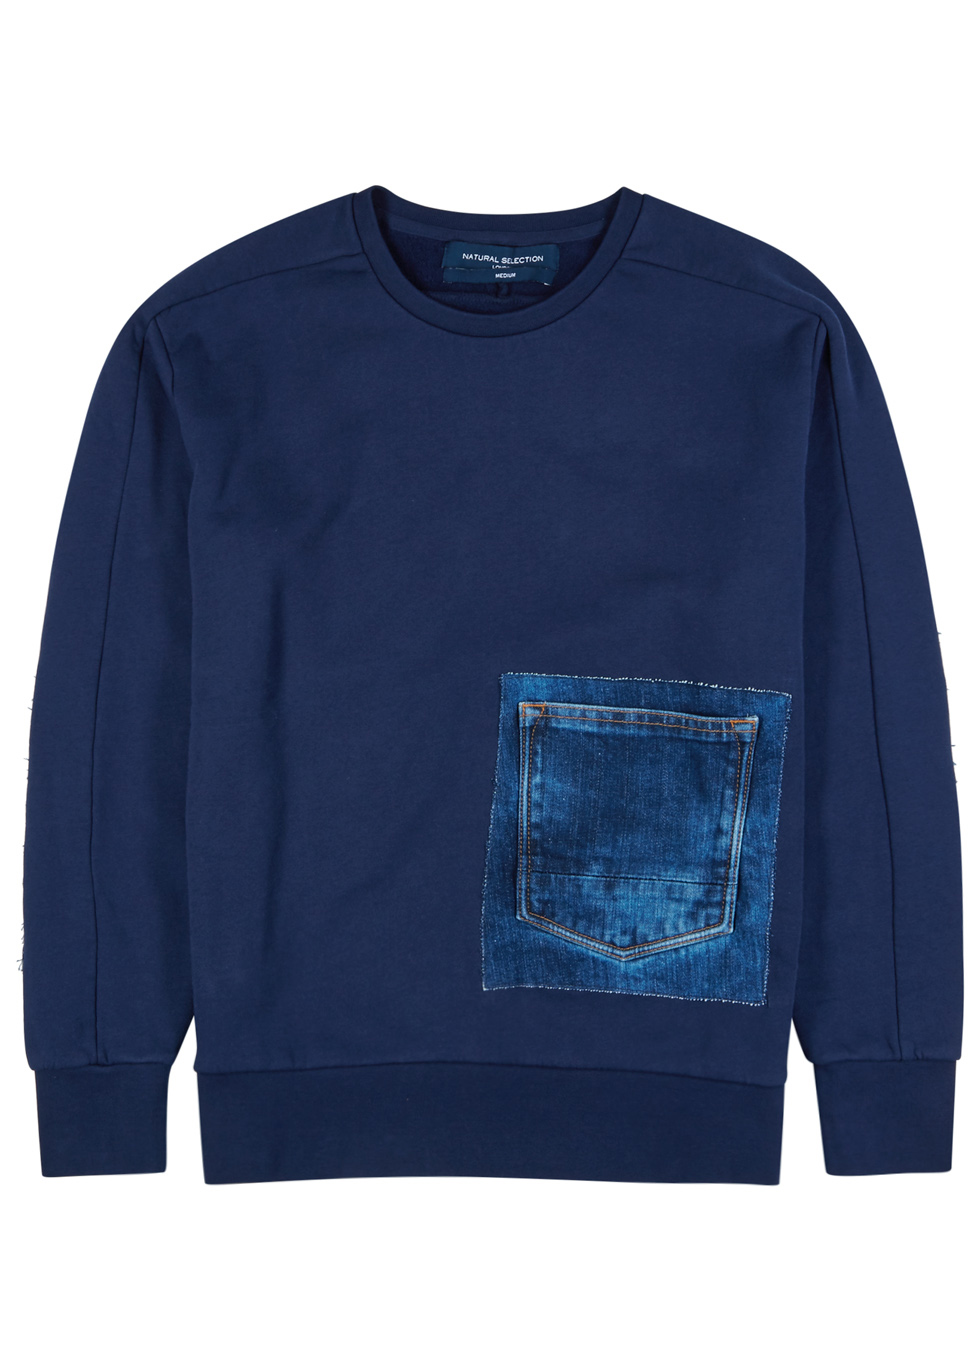 NATURAL SELECTION LINEAR NAVY COTTON AND DENIM SWEATSHIRT